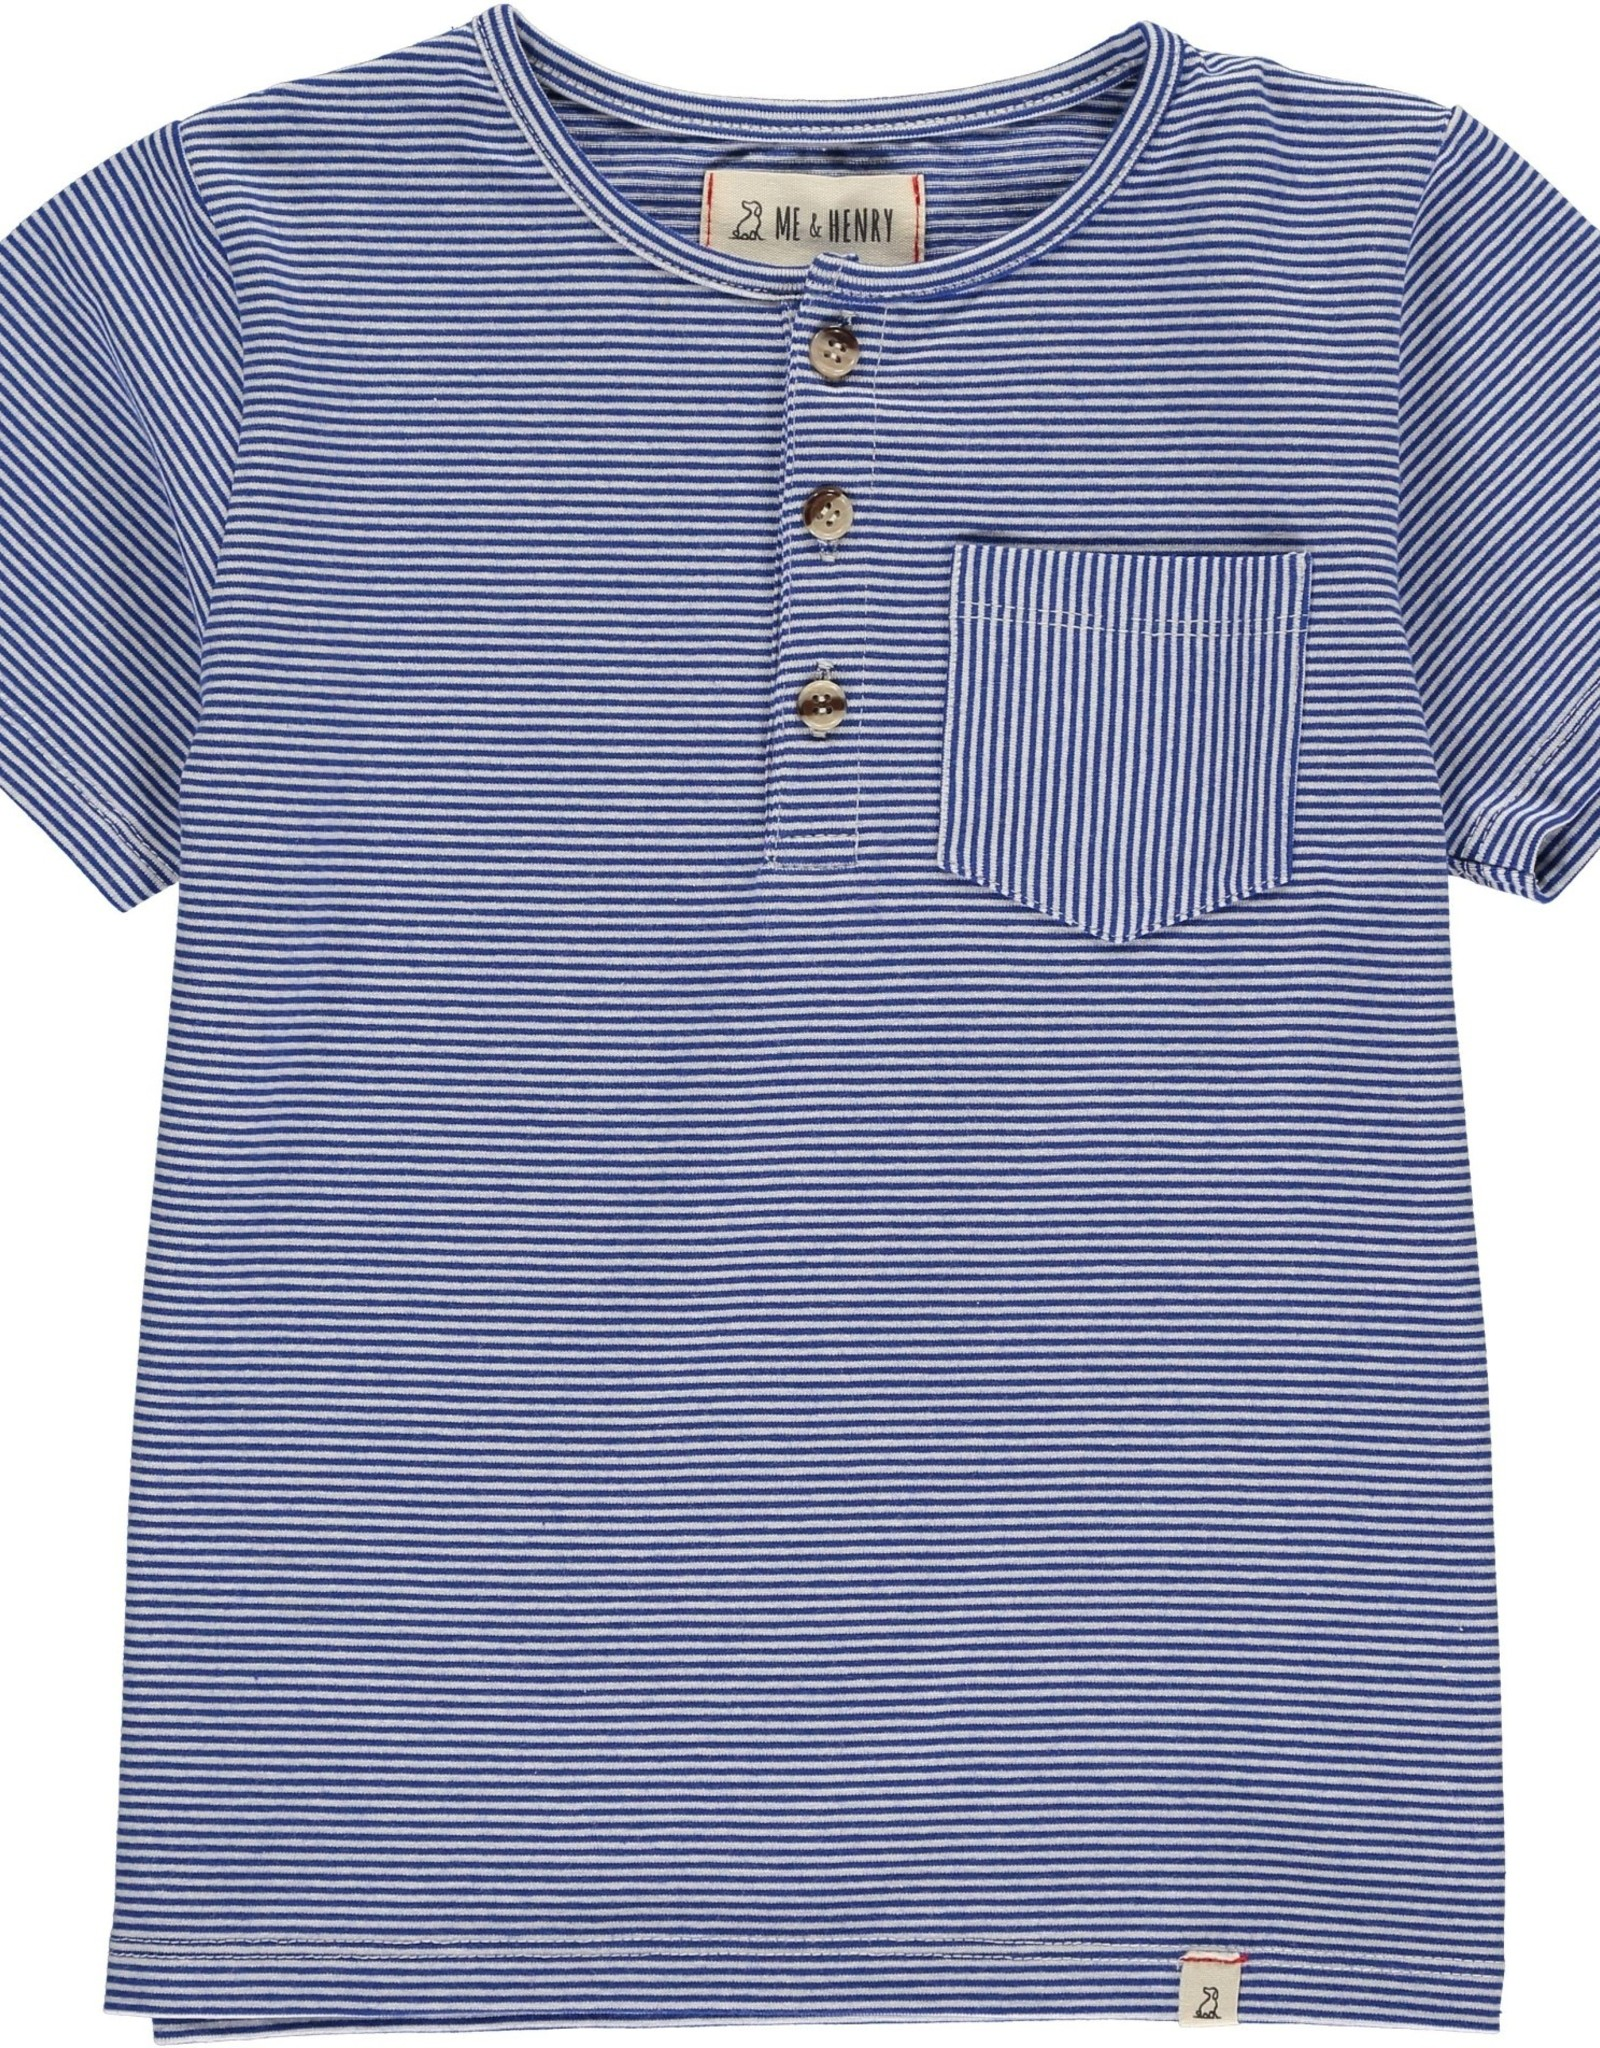 Blue/white Henley tee